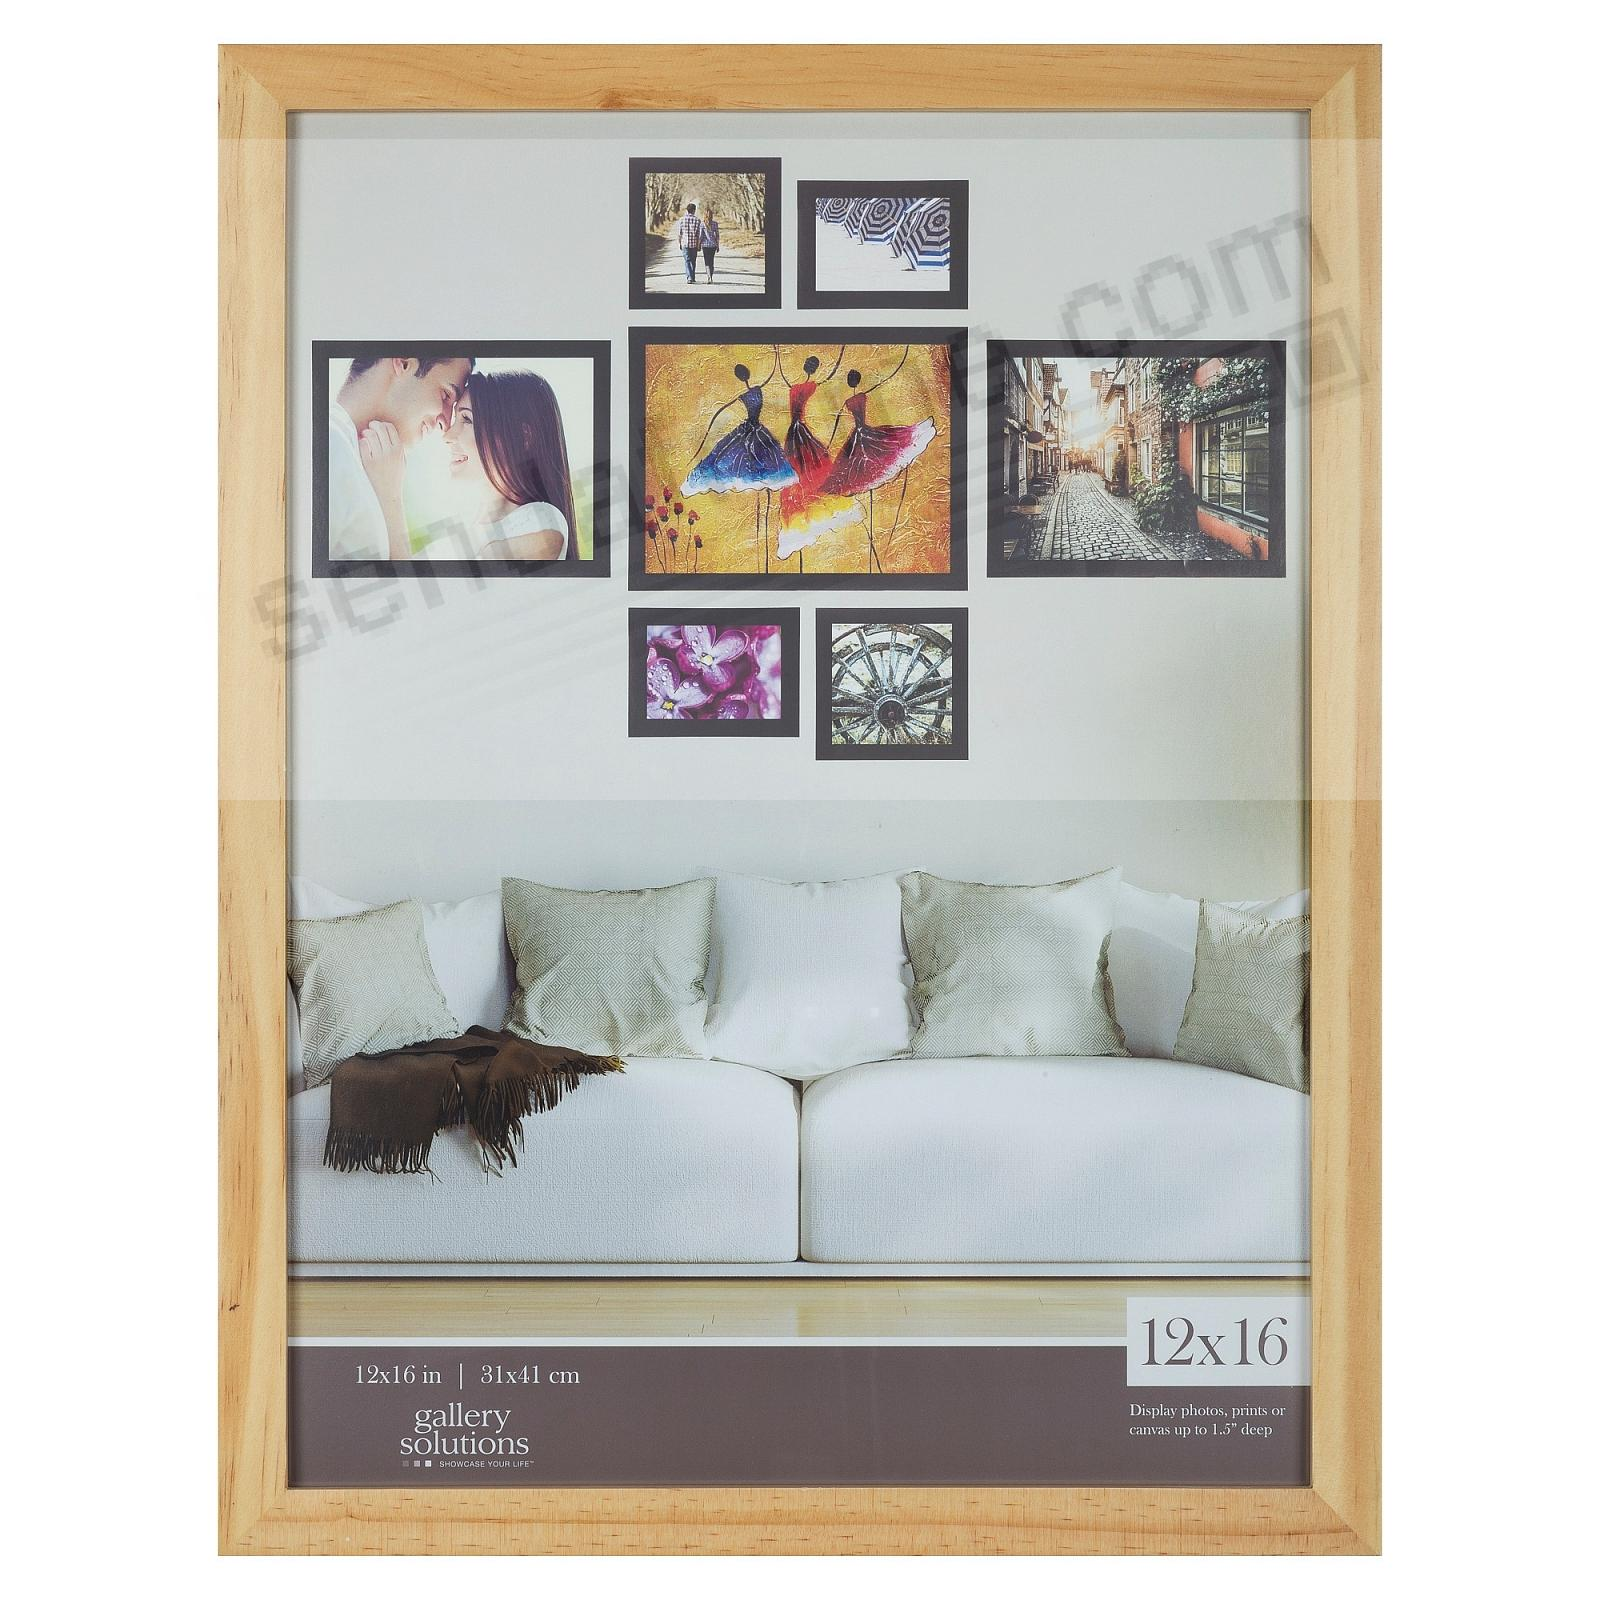 NATURAL GALLERY 12x16 frame by Gallery Solutions®